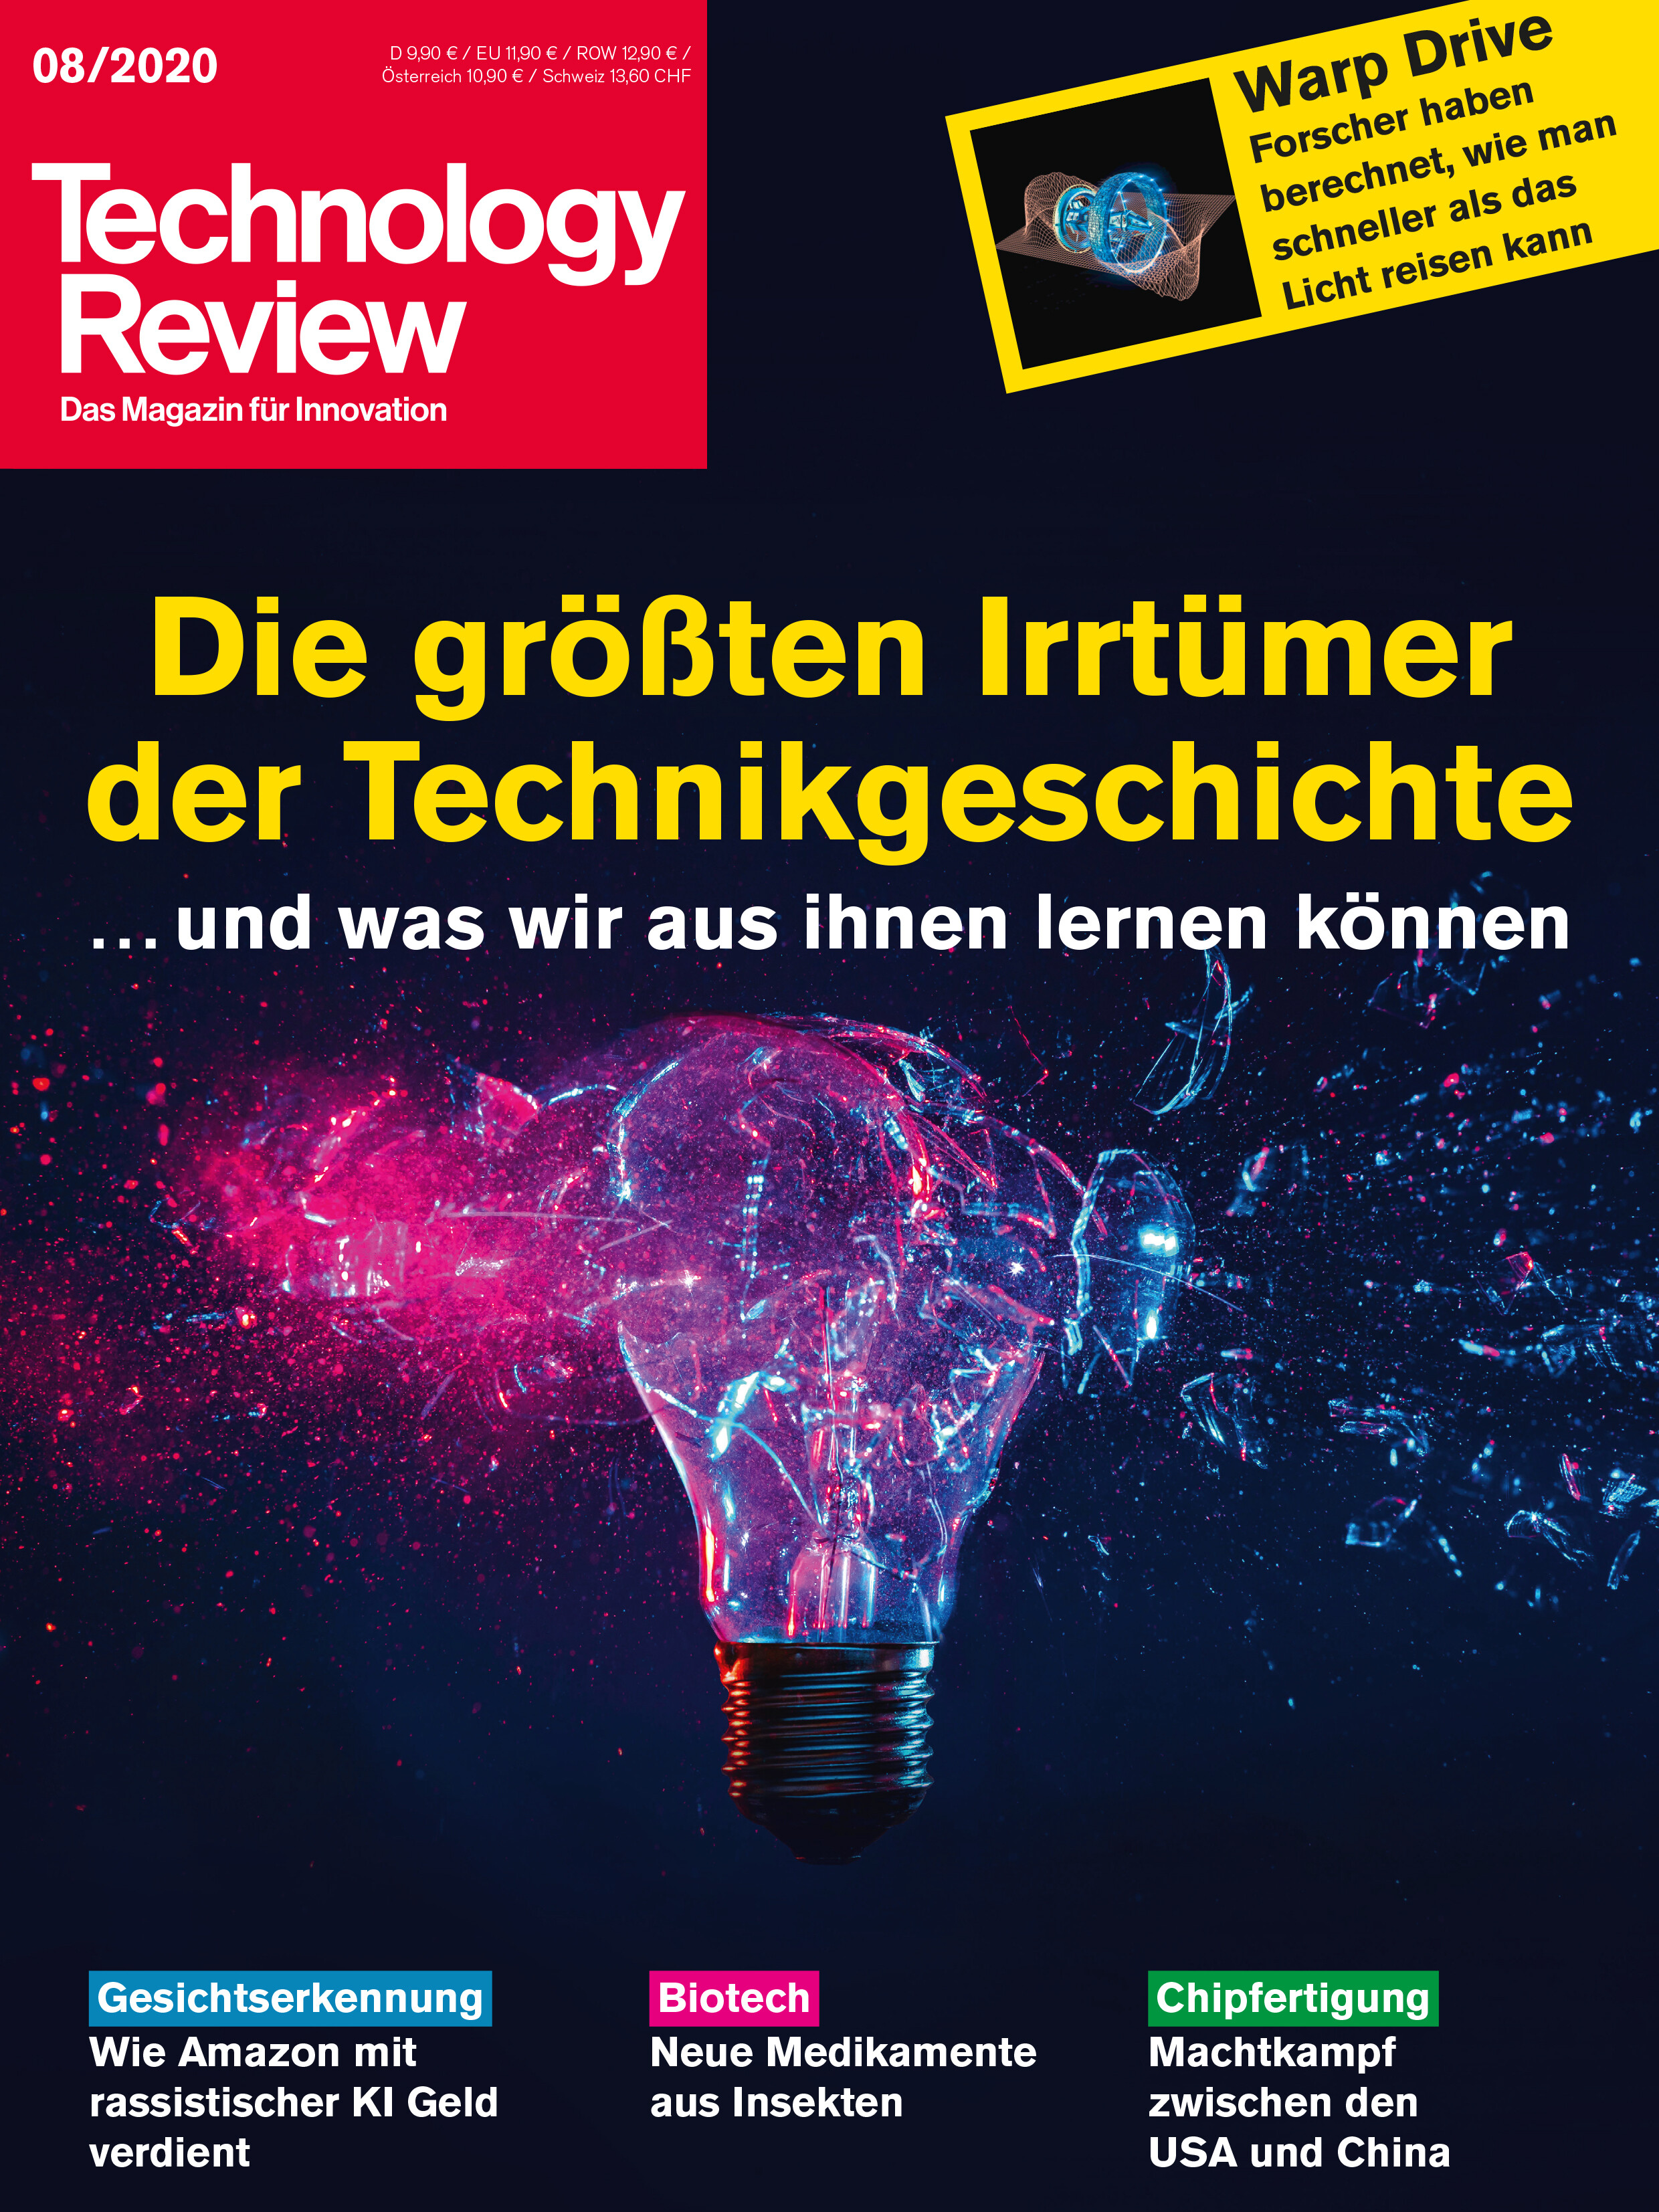 Technology Review 08/2020